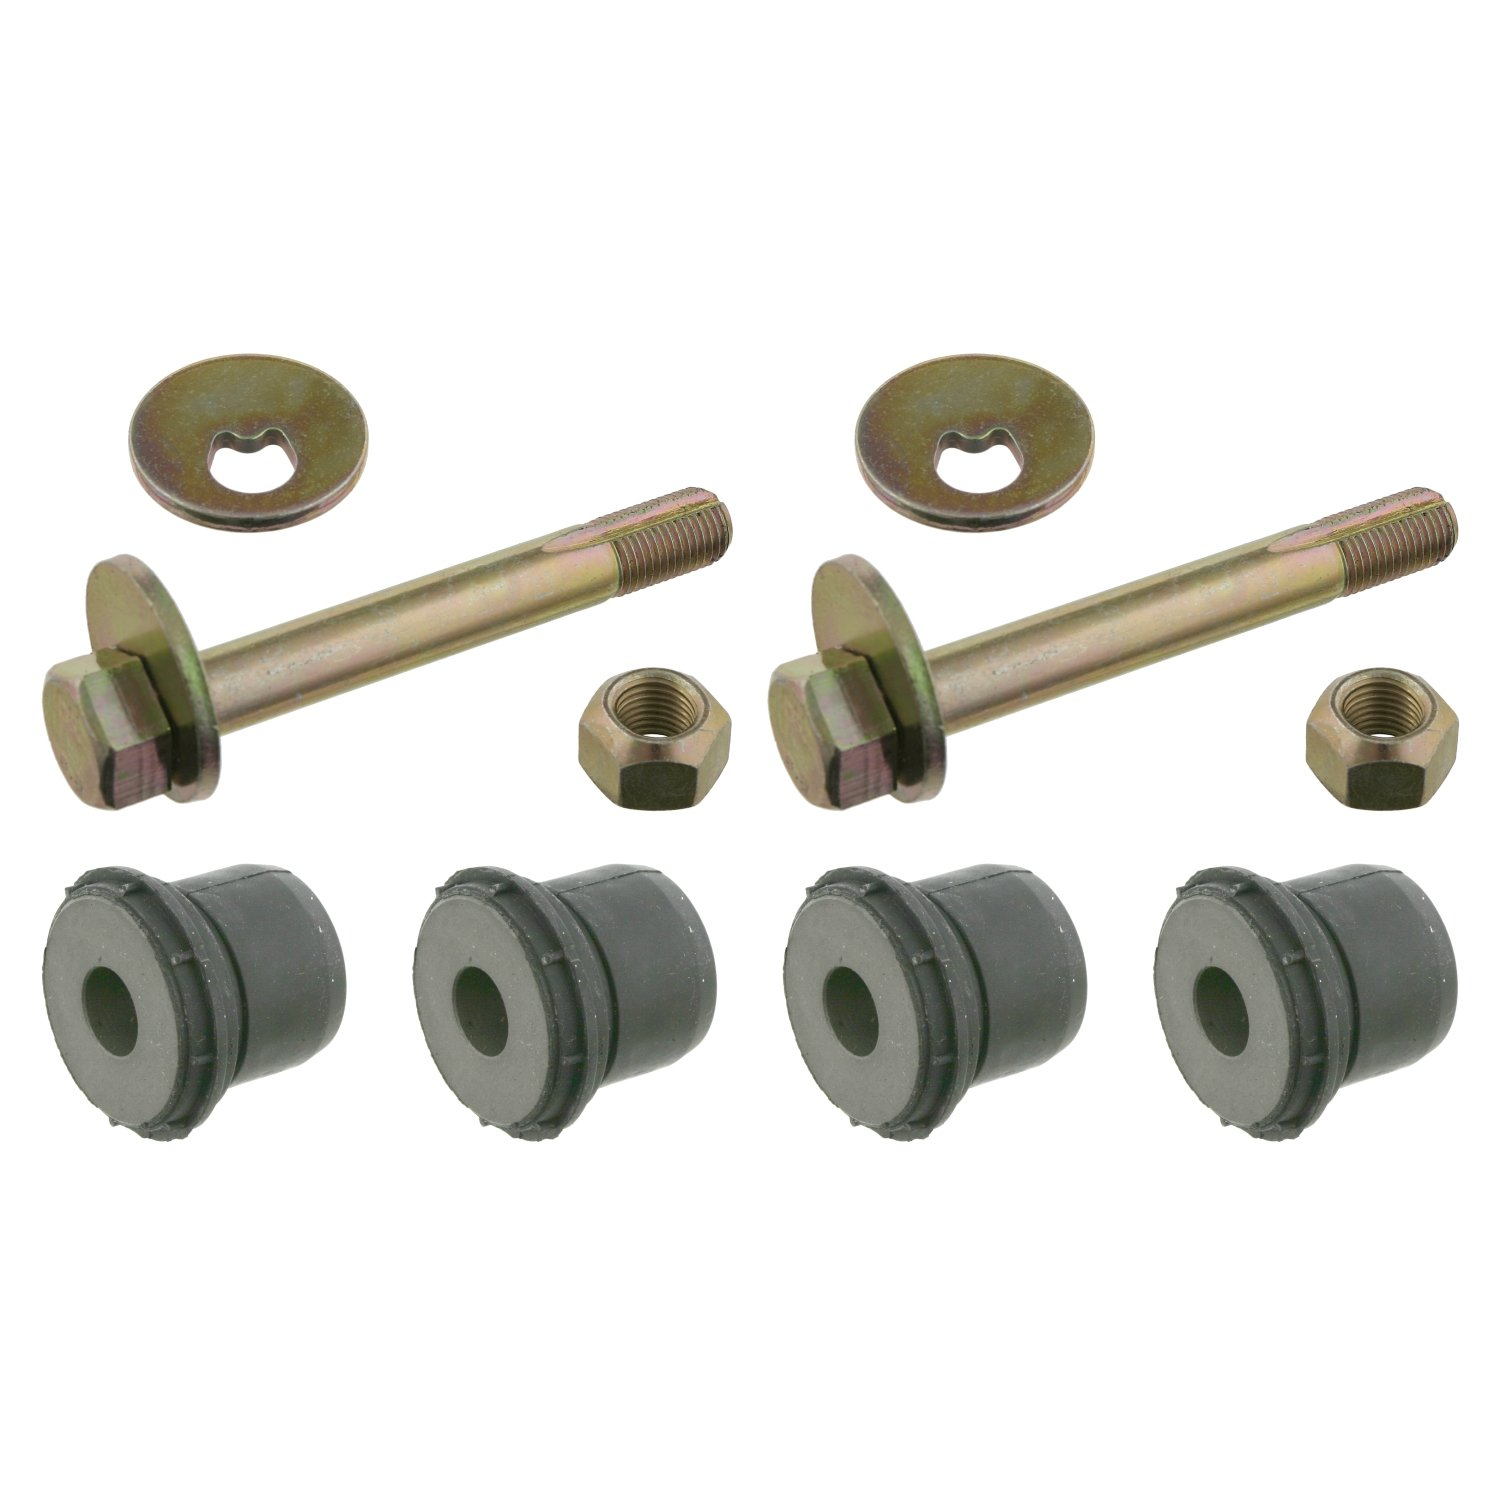 febi bilstein 01692 control arm bushing kit single set (bottom front axle, on both sides) - Pack of 1